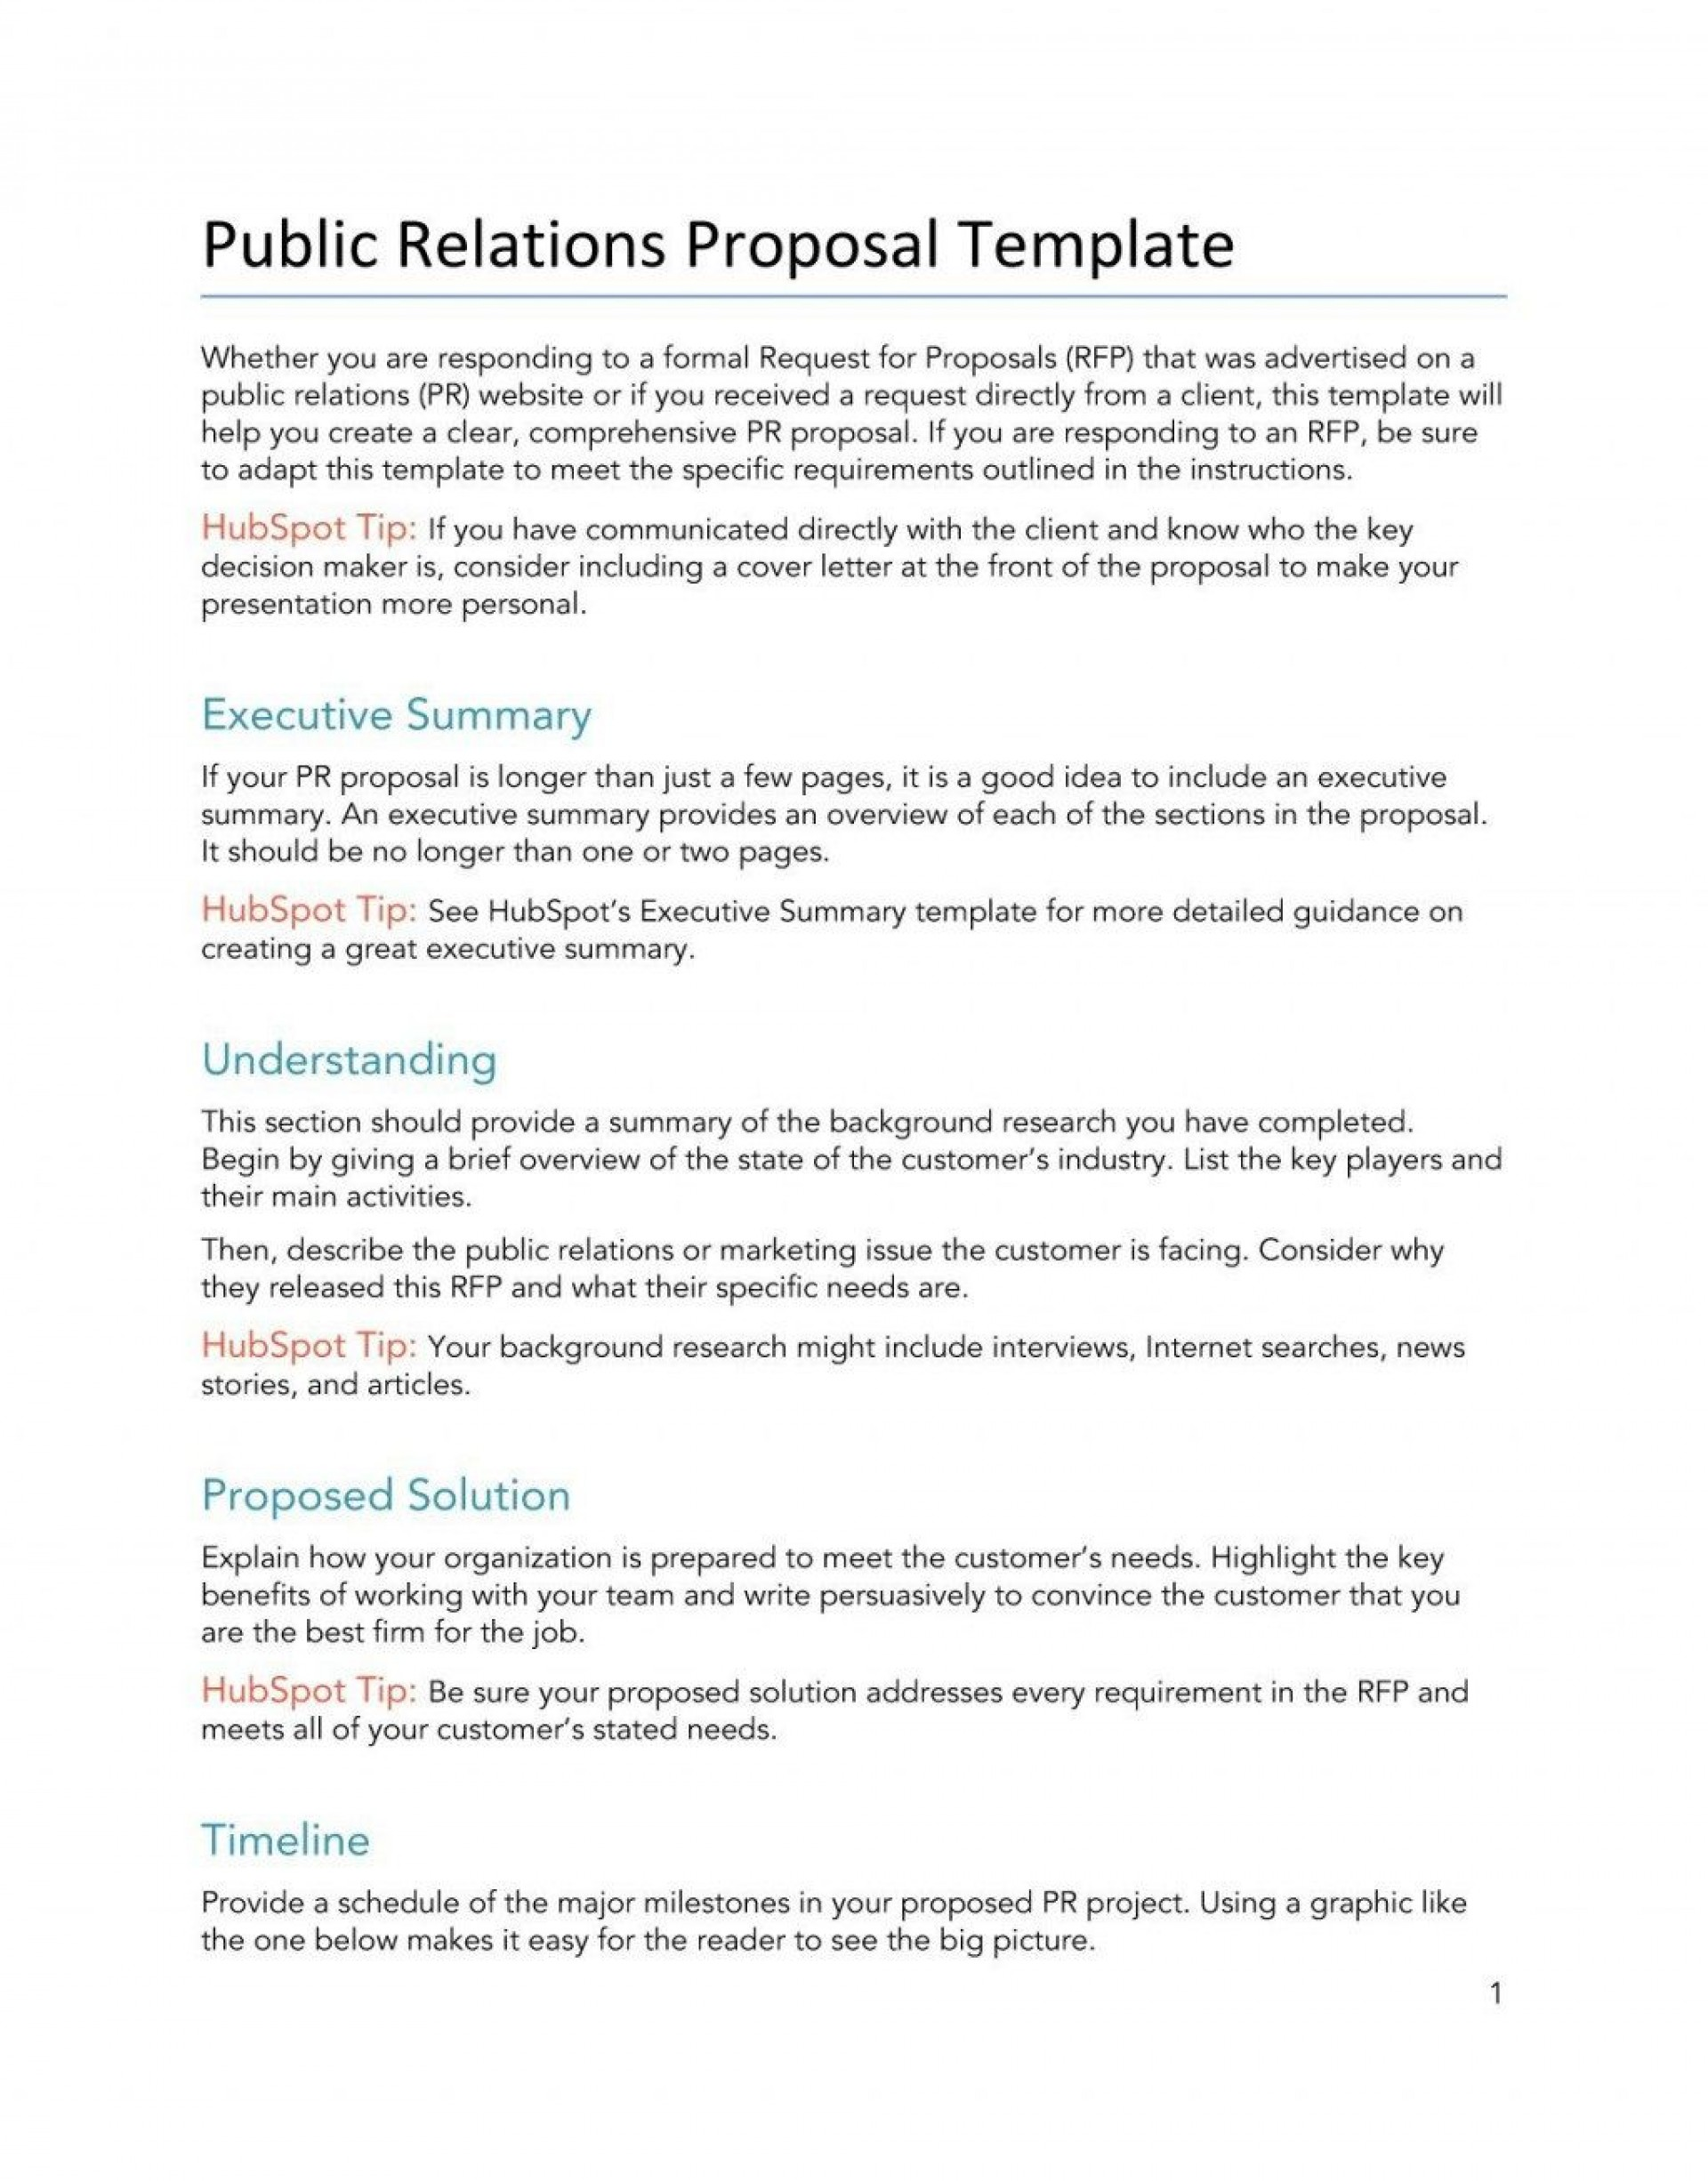 001 Amazing Public Relation Strategy Plan Template Image  Example1920